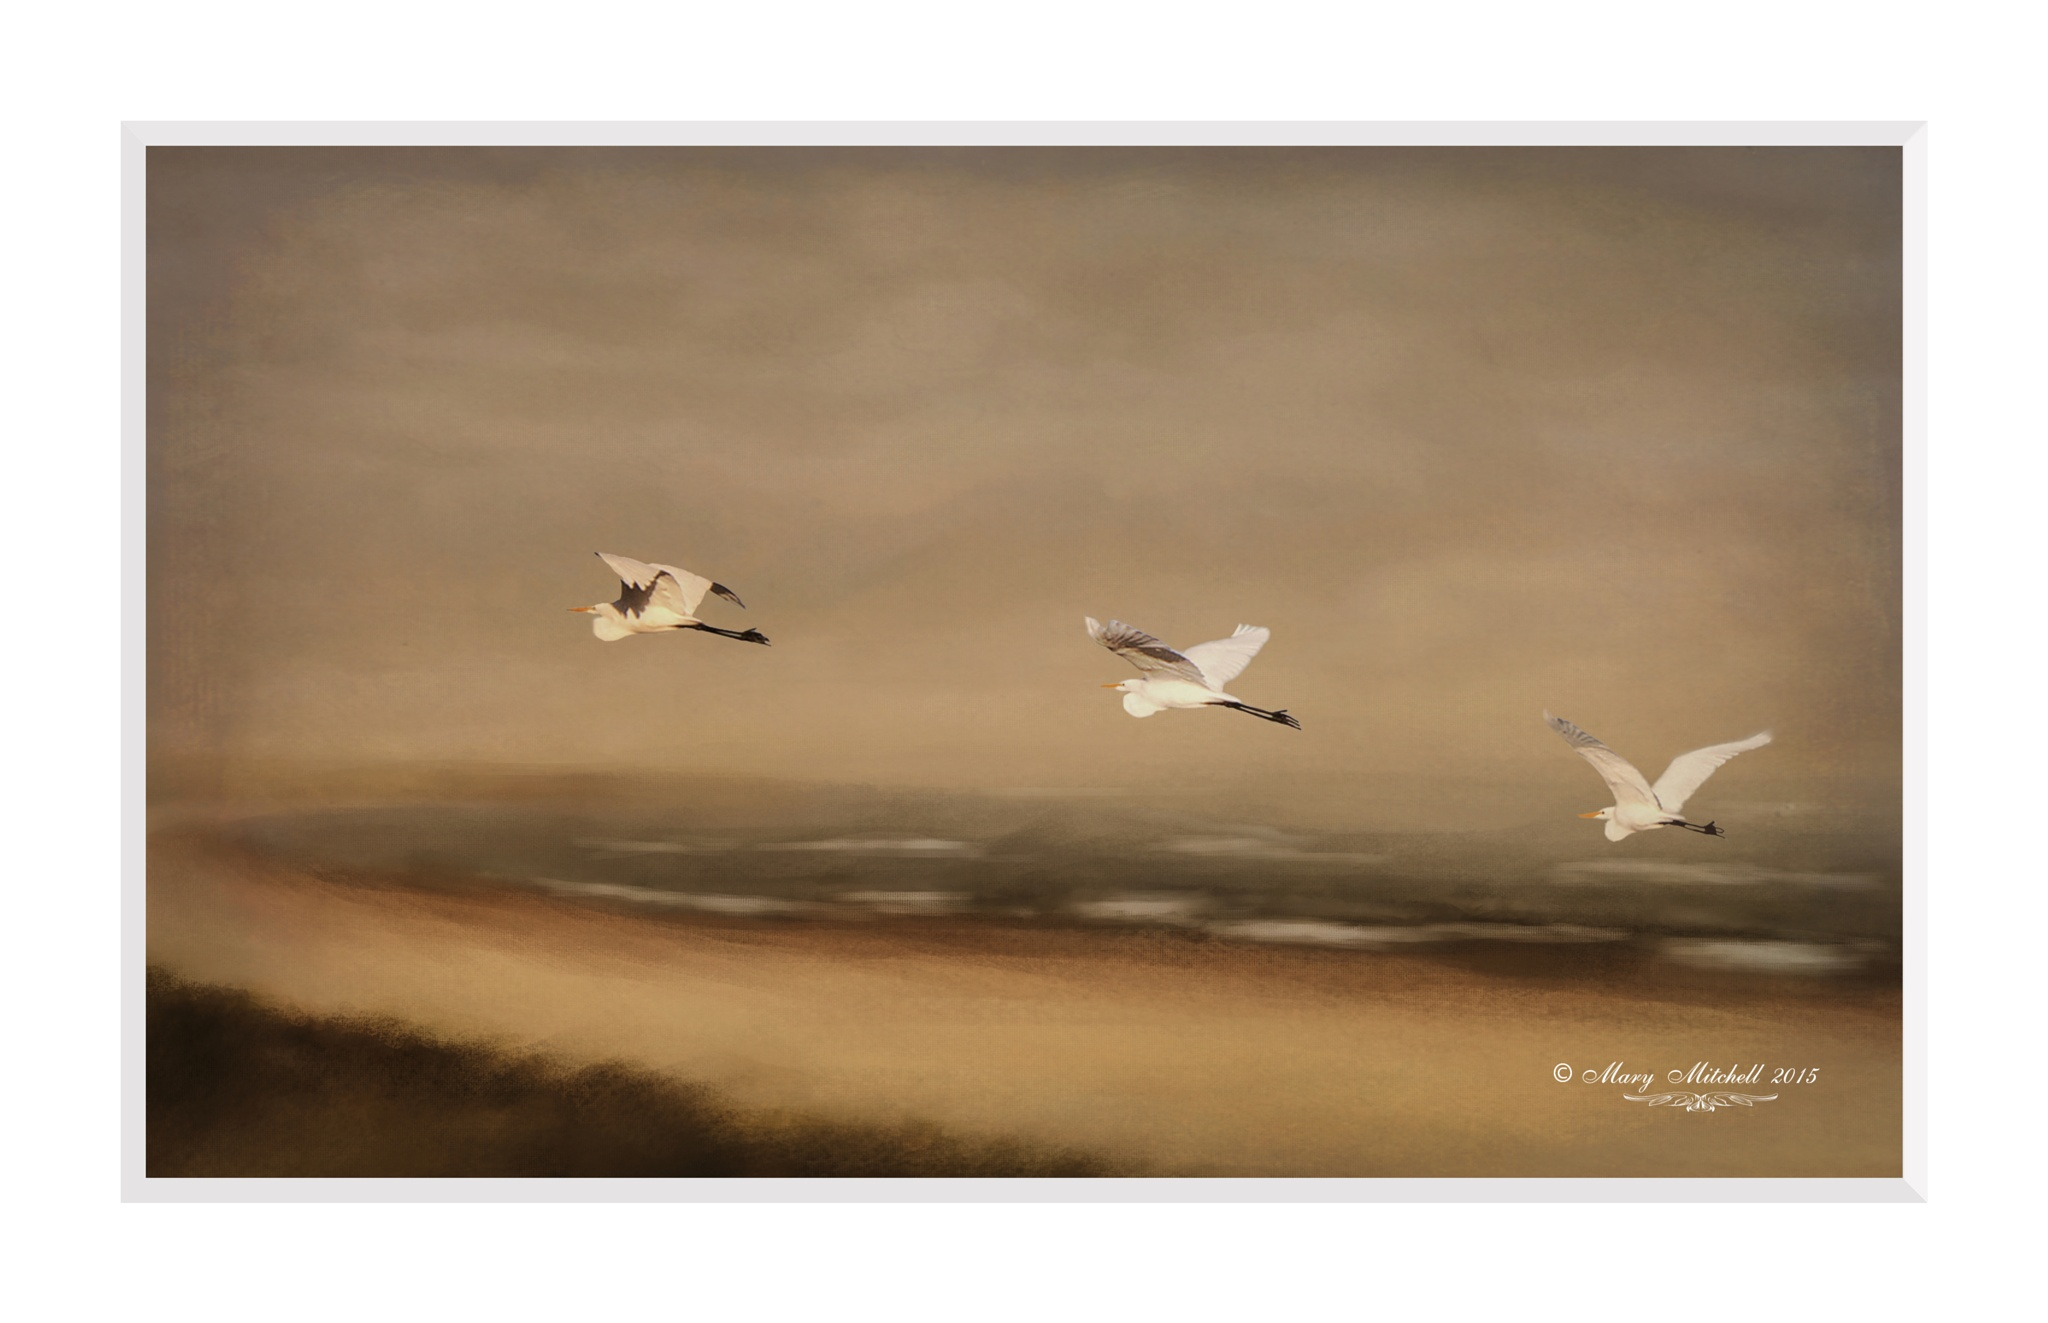 3 Birds in Flight by Mary Mitchell